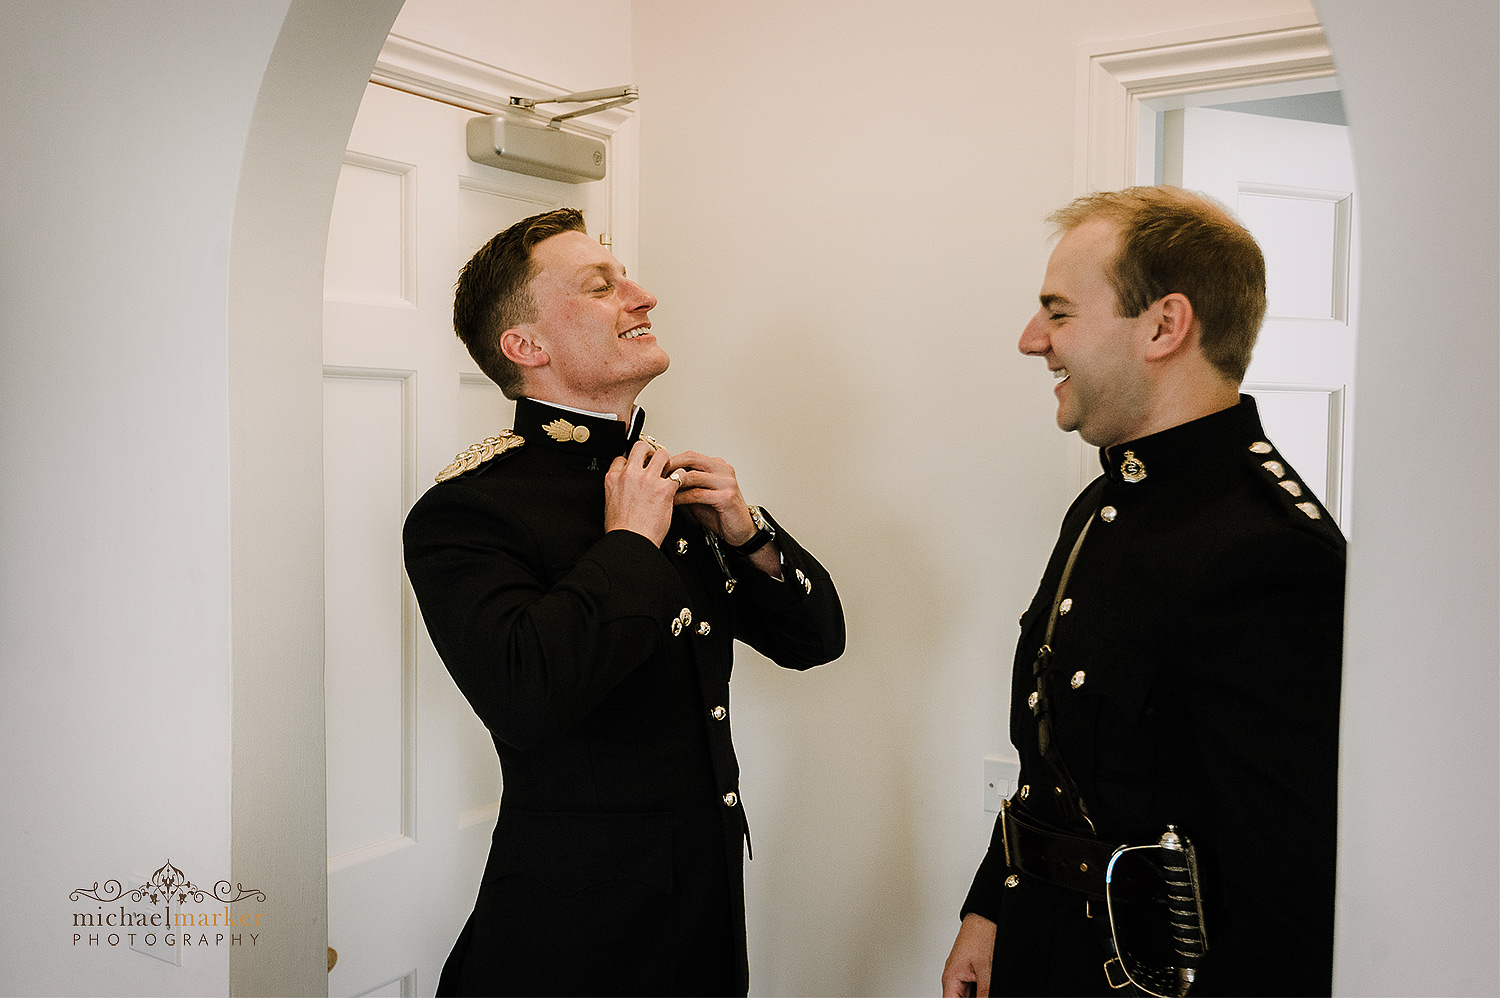 Military officer wedding groom getting dressed with help of his bestman at Pentillie Castle in Cornwall.